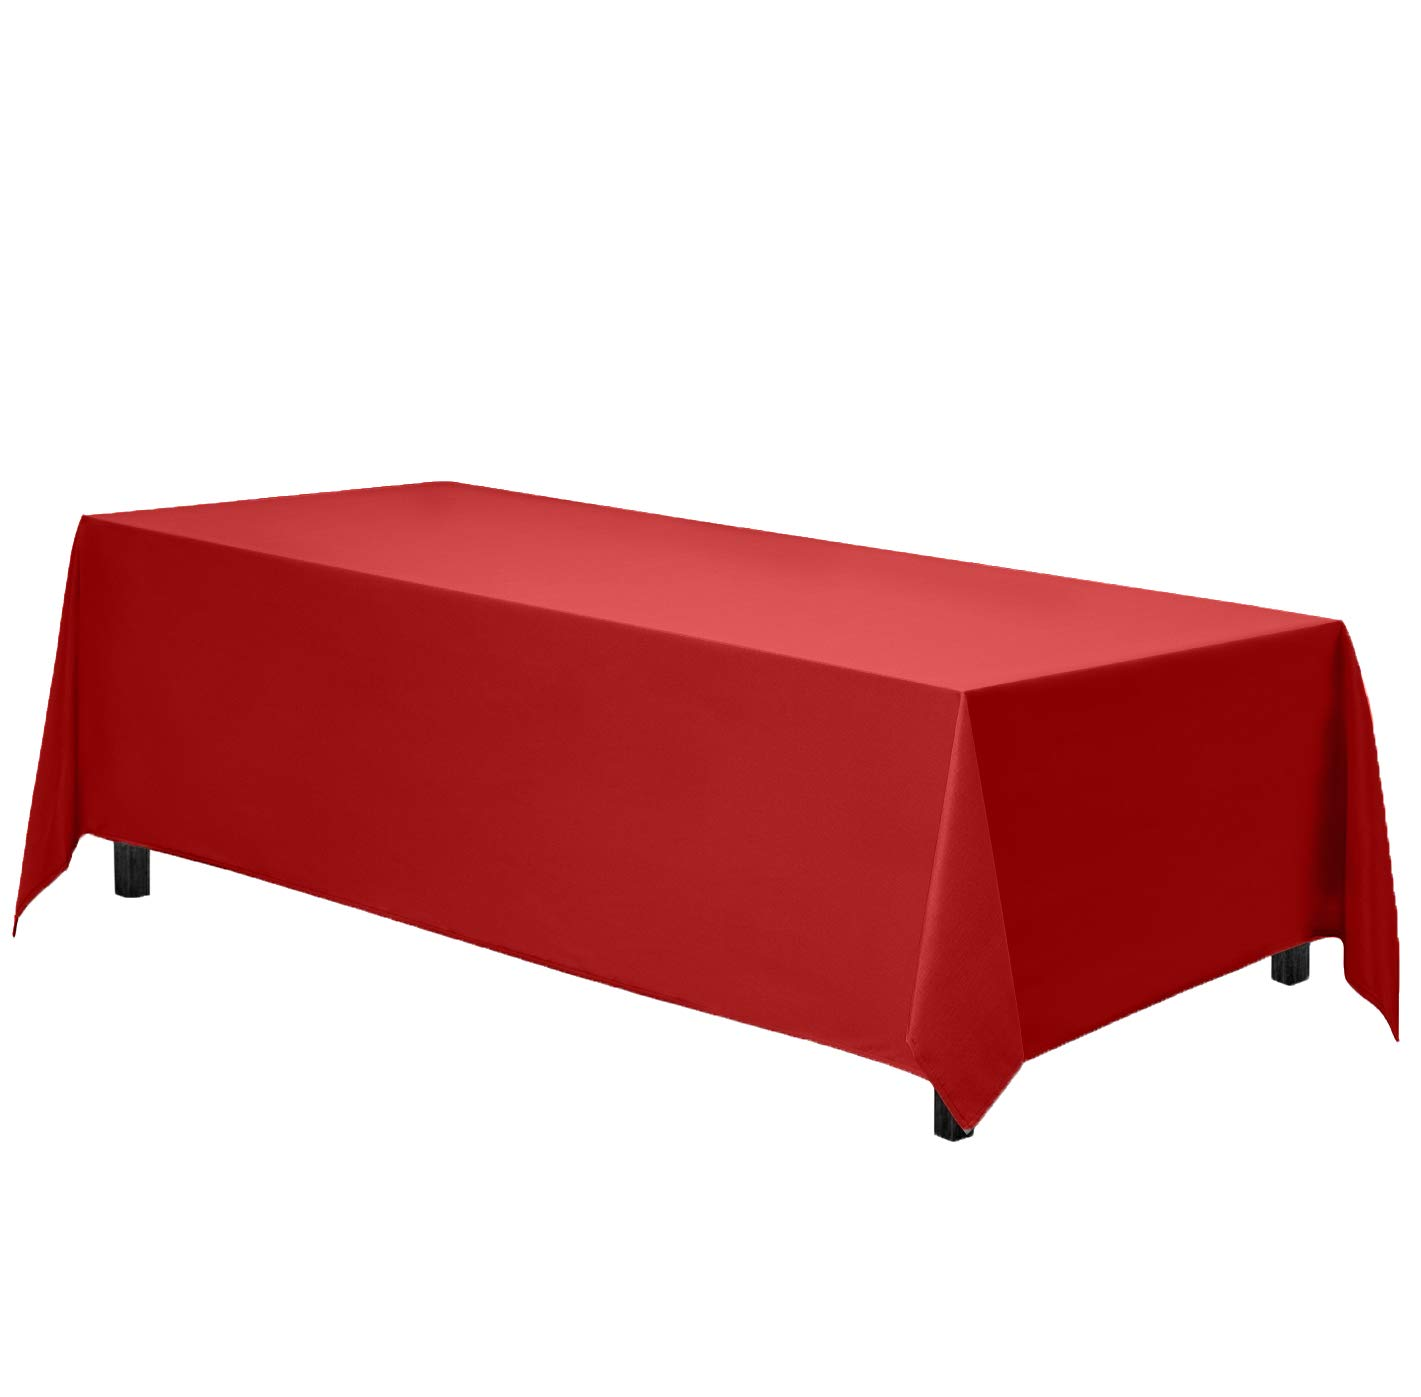 Gee Di Moda Rectangle Tablecloth - 70 x 120 Inch - Red Rectangular Table Cloth in Washable Polyester - Great for Buffet Table, Parties, Holiday Dinner, Wedding & More